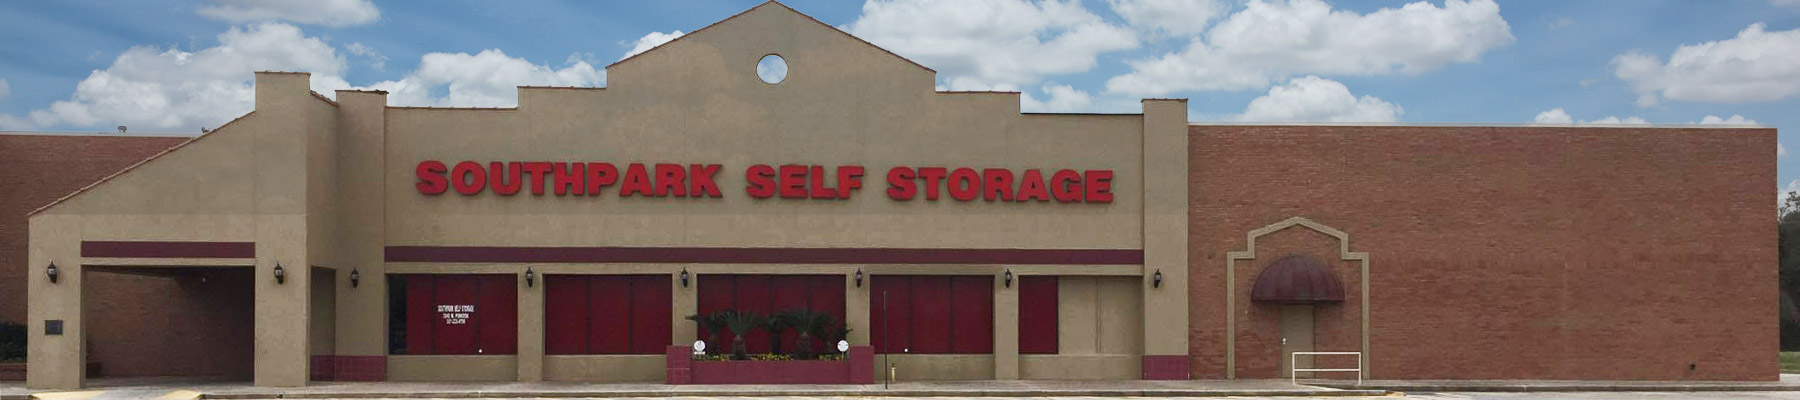 Southpark Self Storage